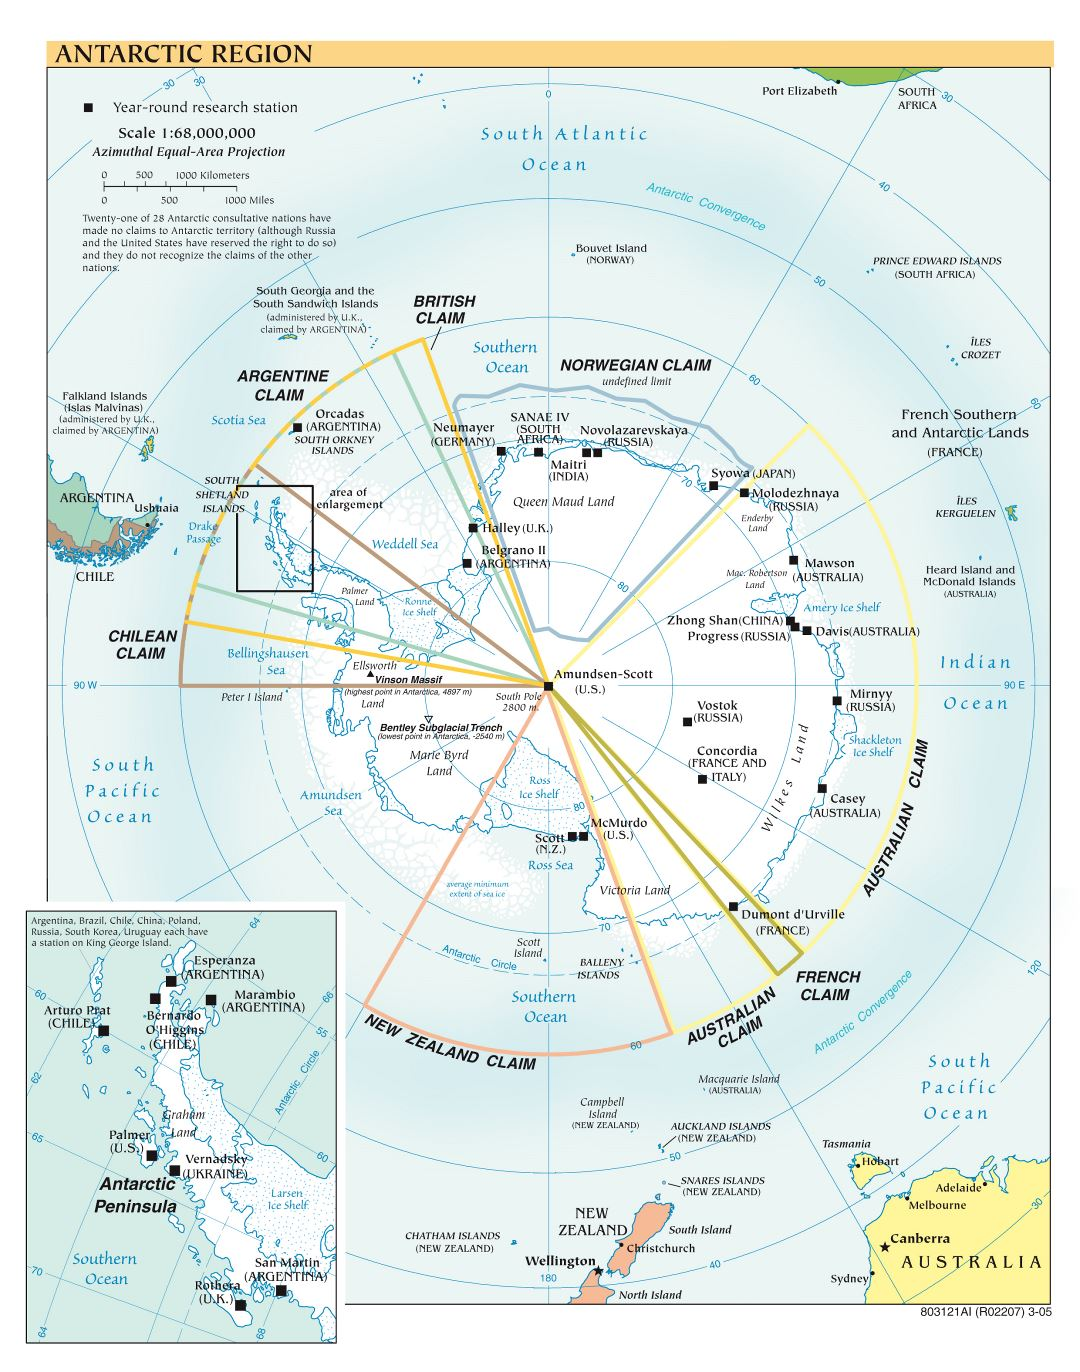 Large scale political map of Antarctic Region - 2005